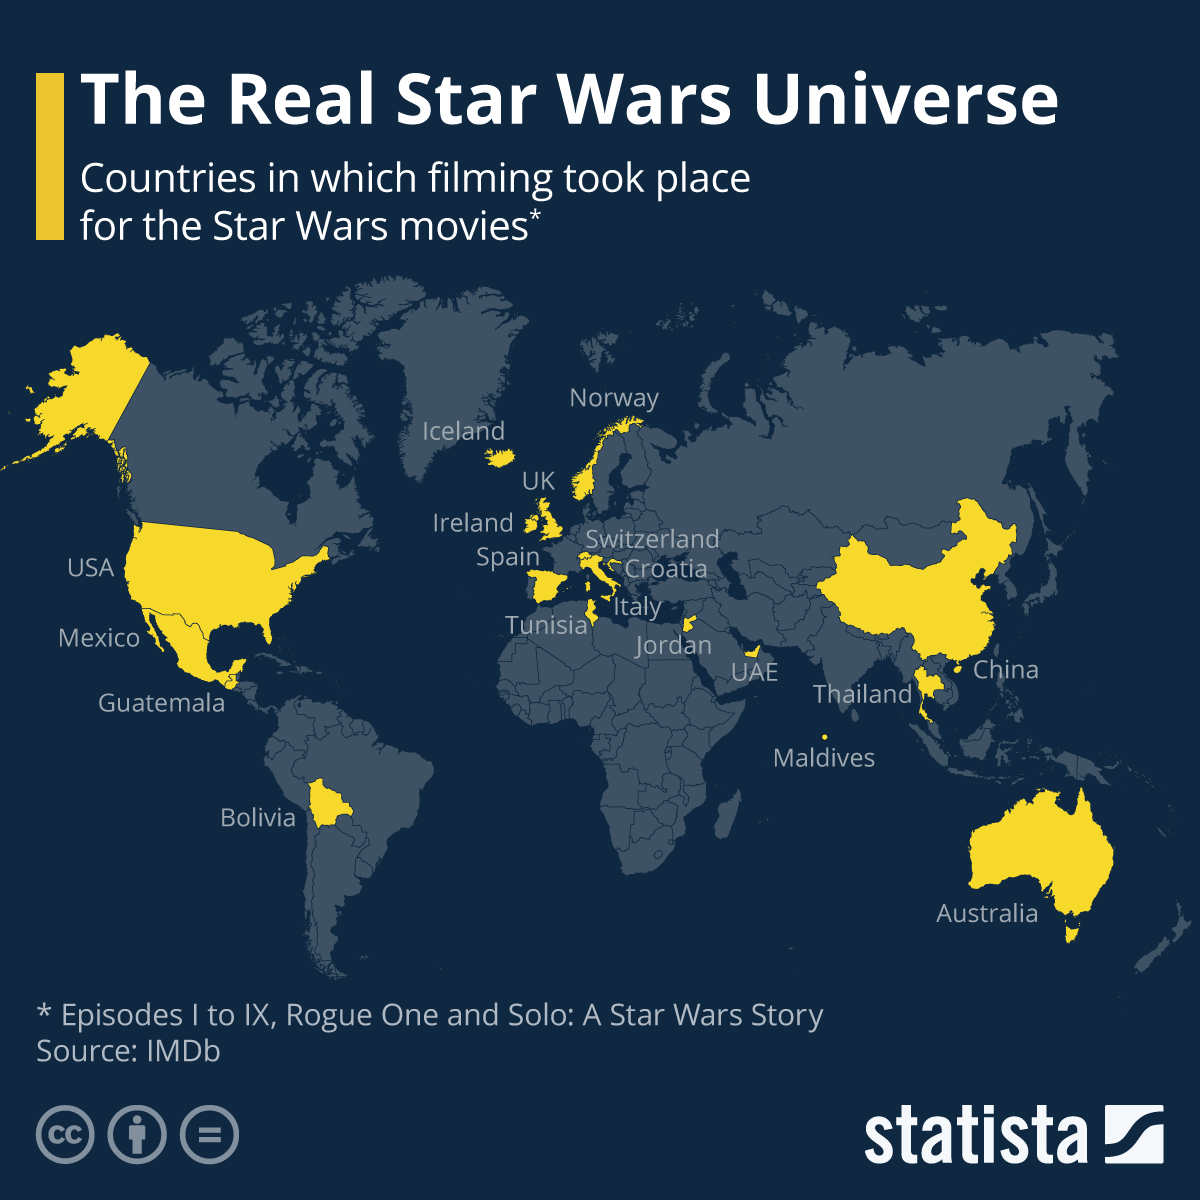 the-real-star-wars-universe-7196